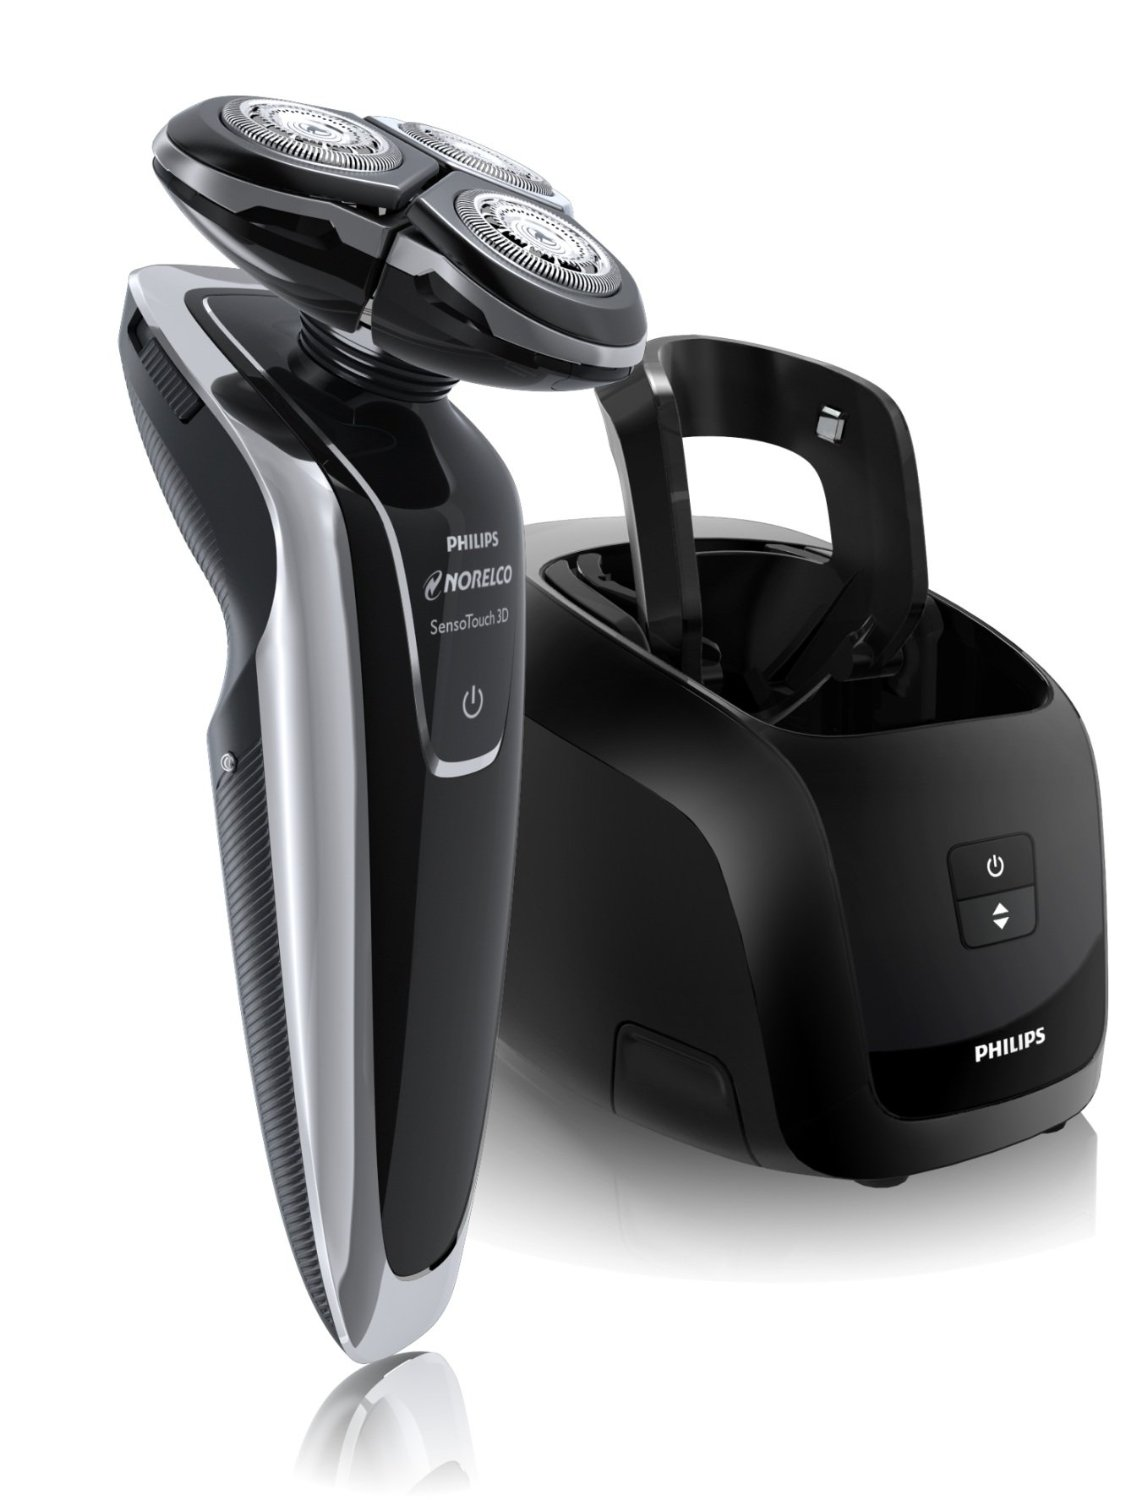 Philips Norelco 1280X SensoTouch 3D Electric Razor with Jet Clean System